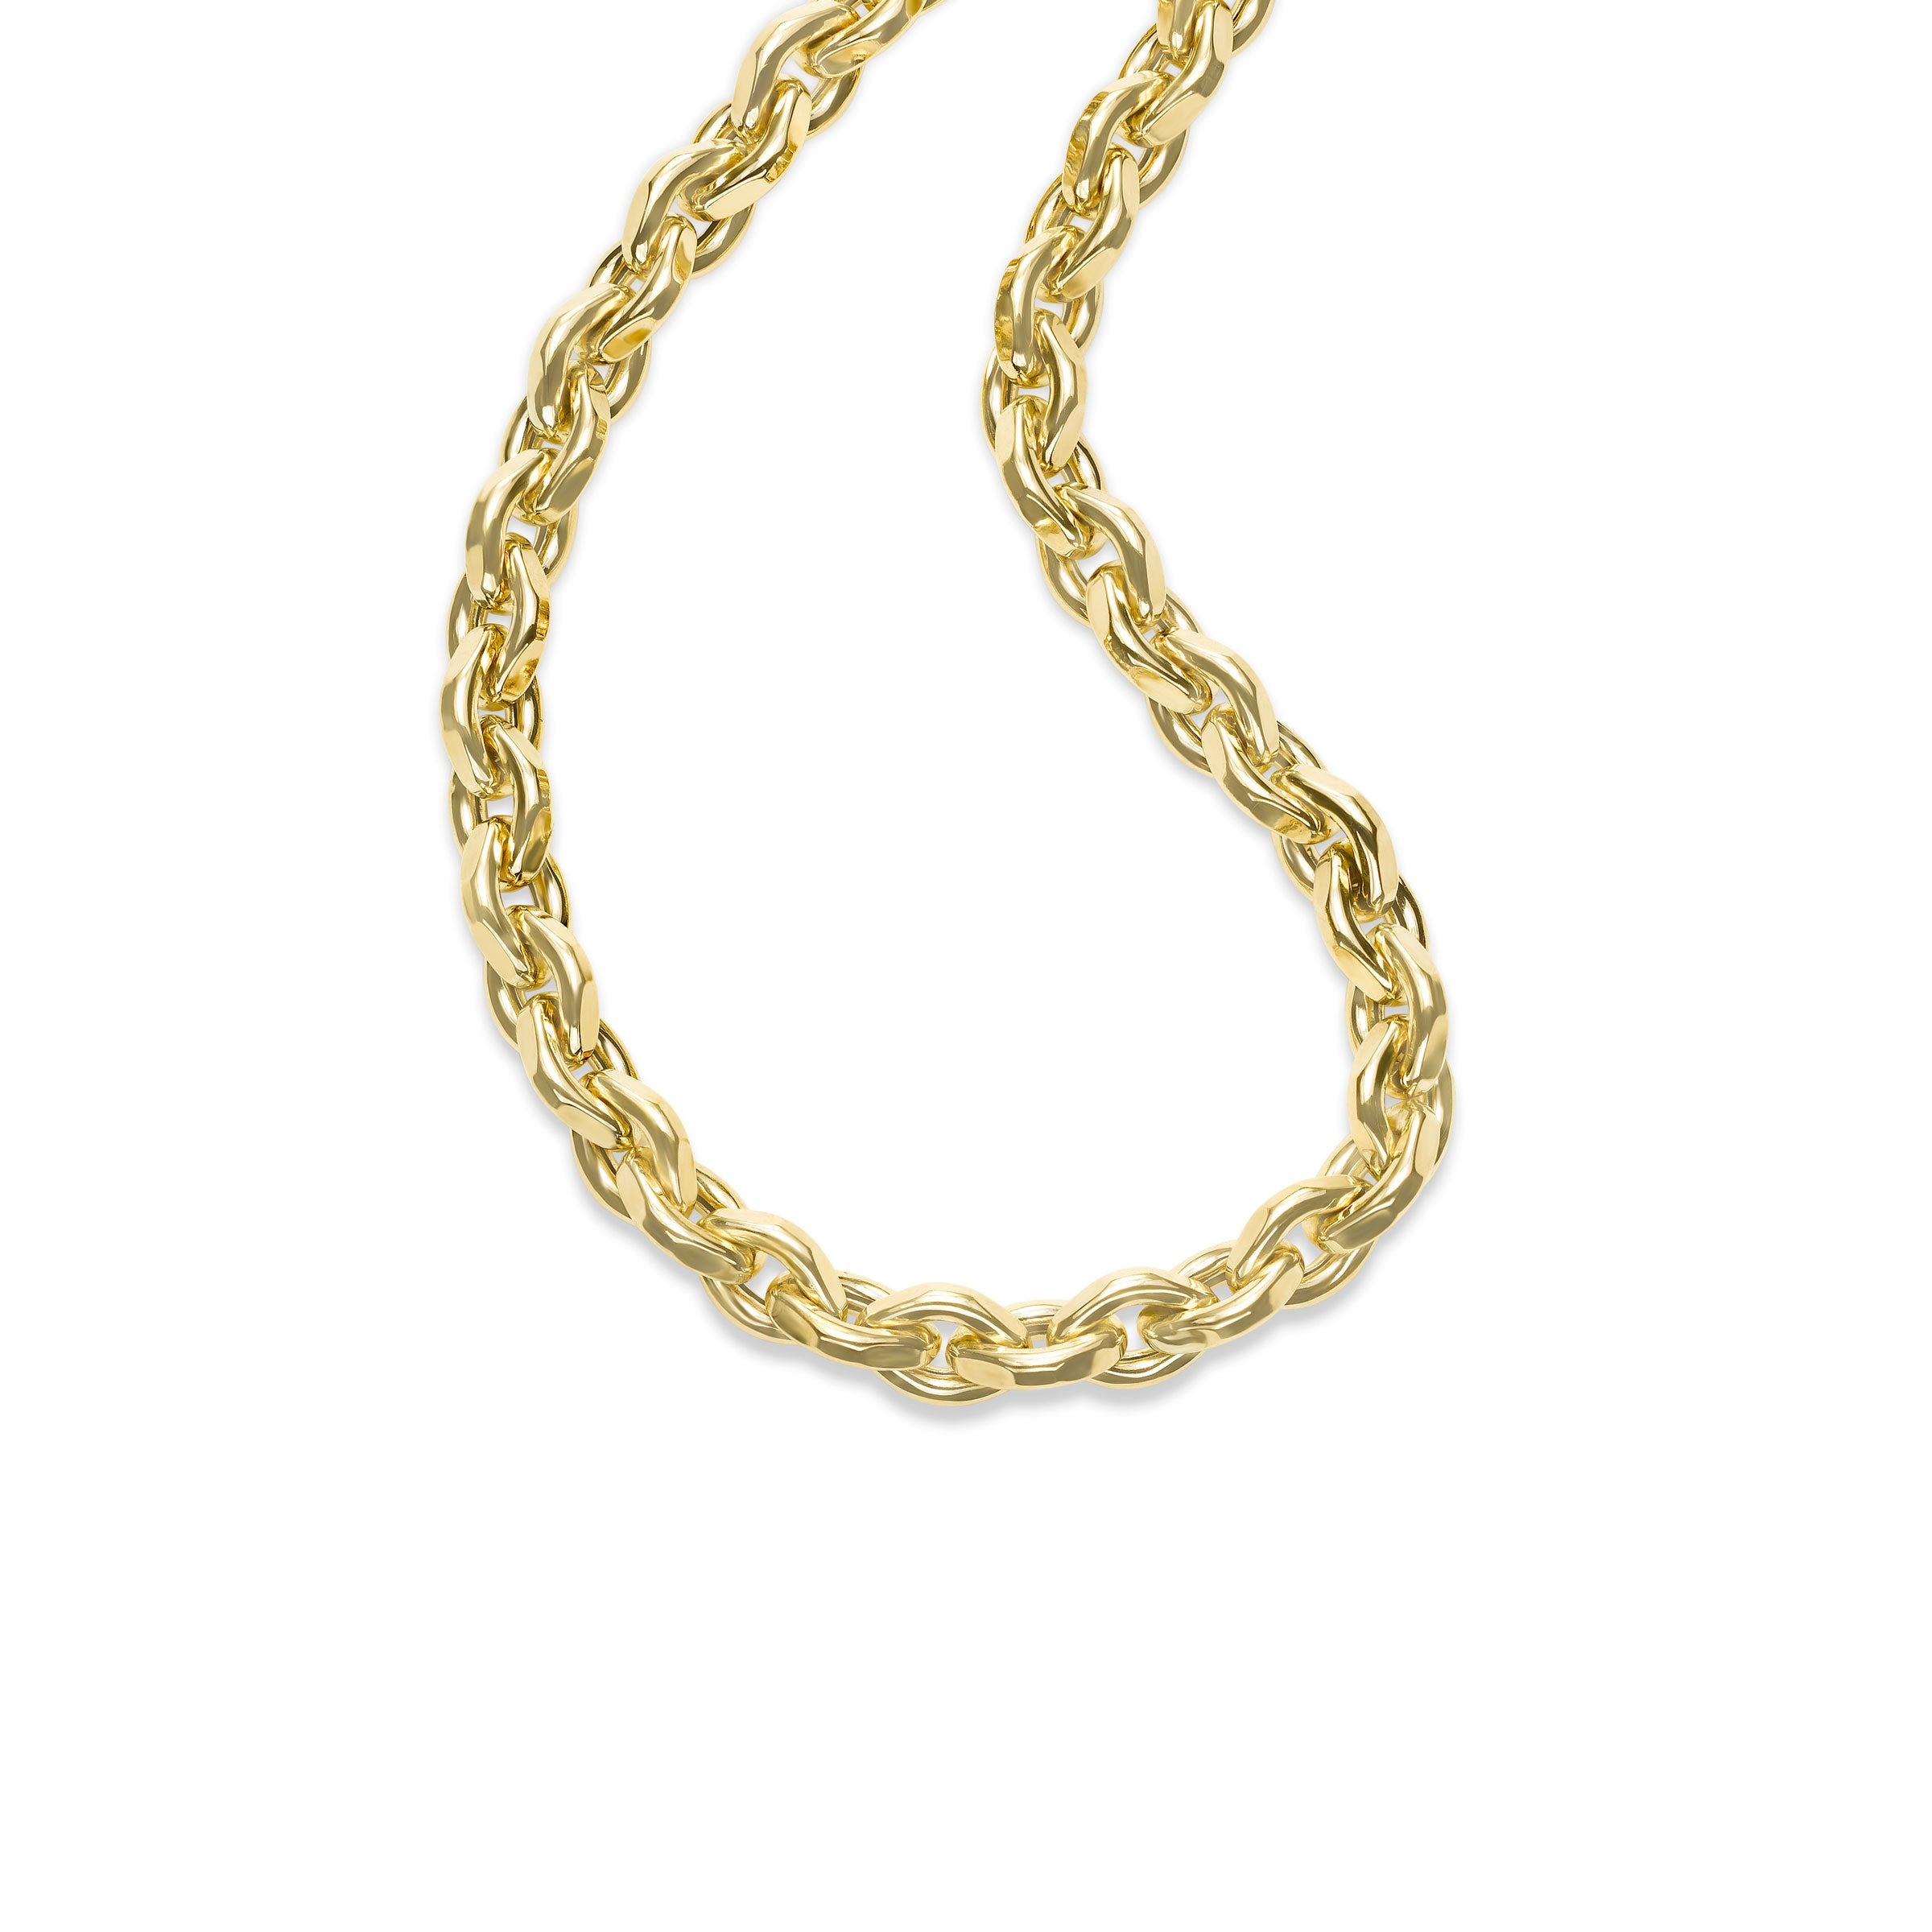 Substantial Oval Chain Necklace, 18 Inches, 14K Yellow Gold